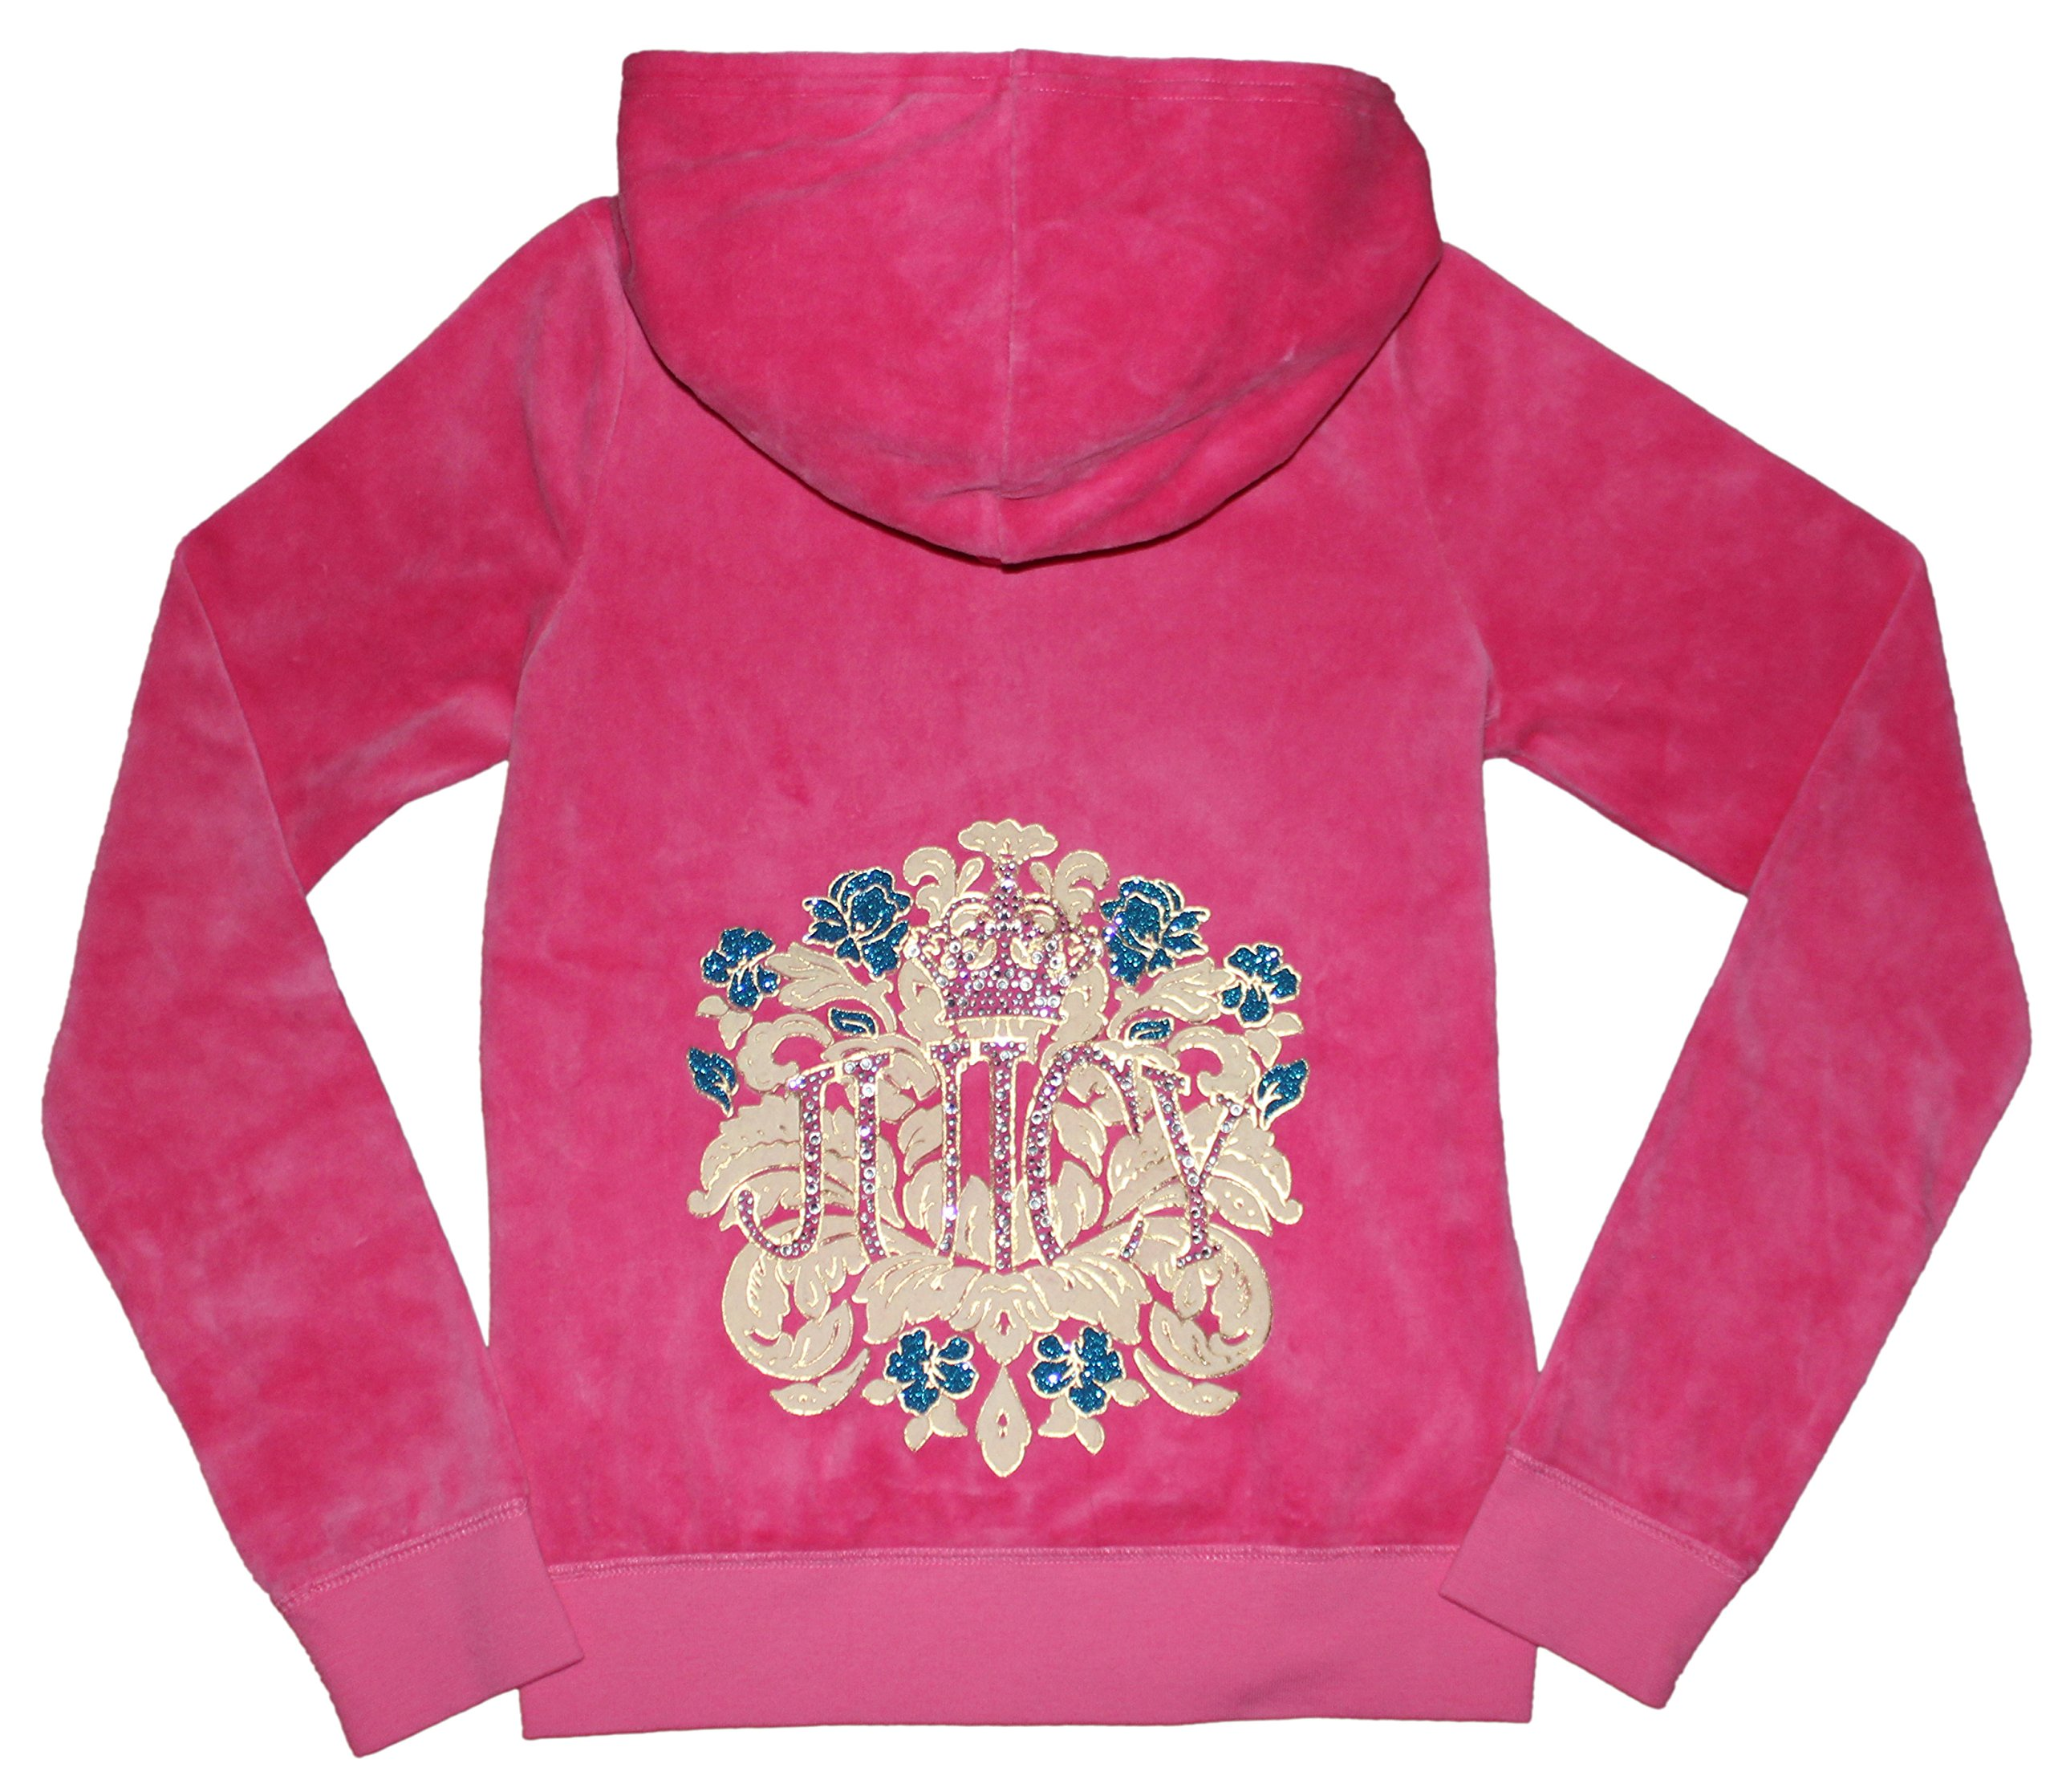 Juicy Couture Girls Embellished T-shirt or Velour Hoodie (X-Large 12-14 Pink Hoodie) by Juicy Couture